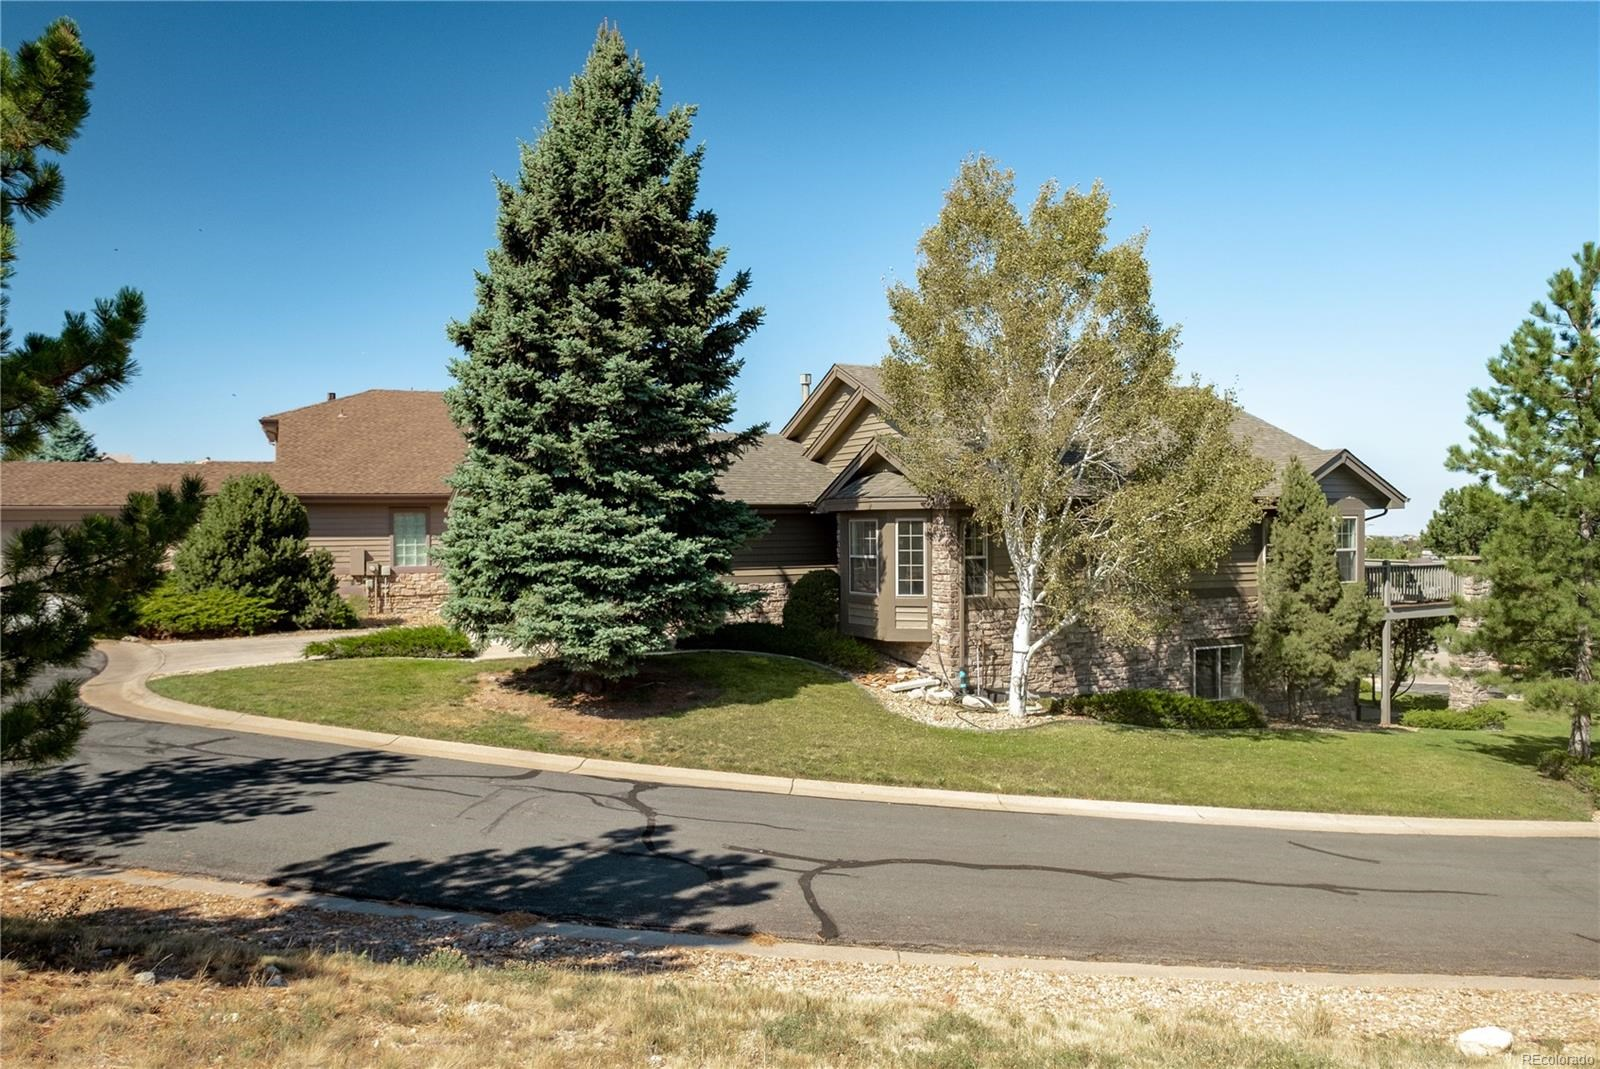 MLS# 9162651 - 28 - 51 Toppler Court, Castle Pines, CO 80108